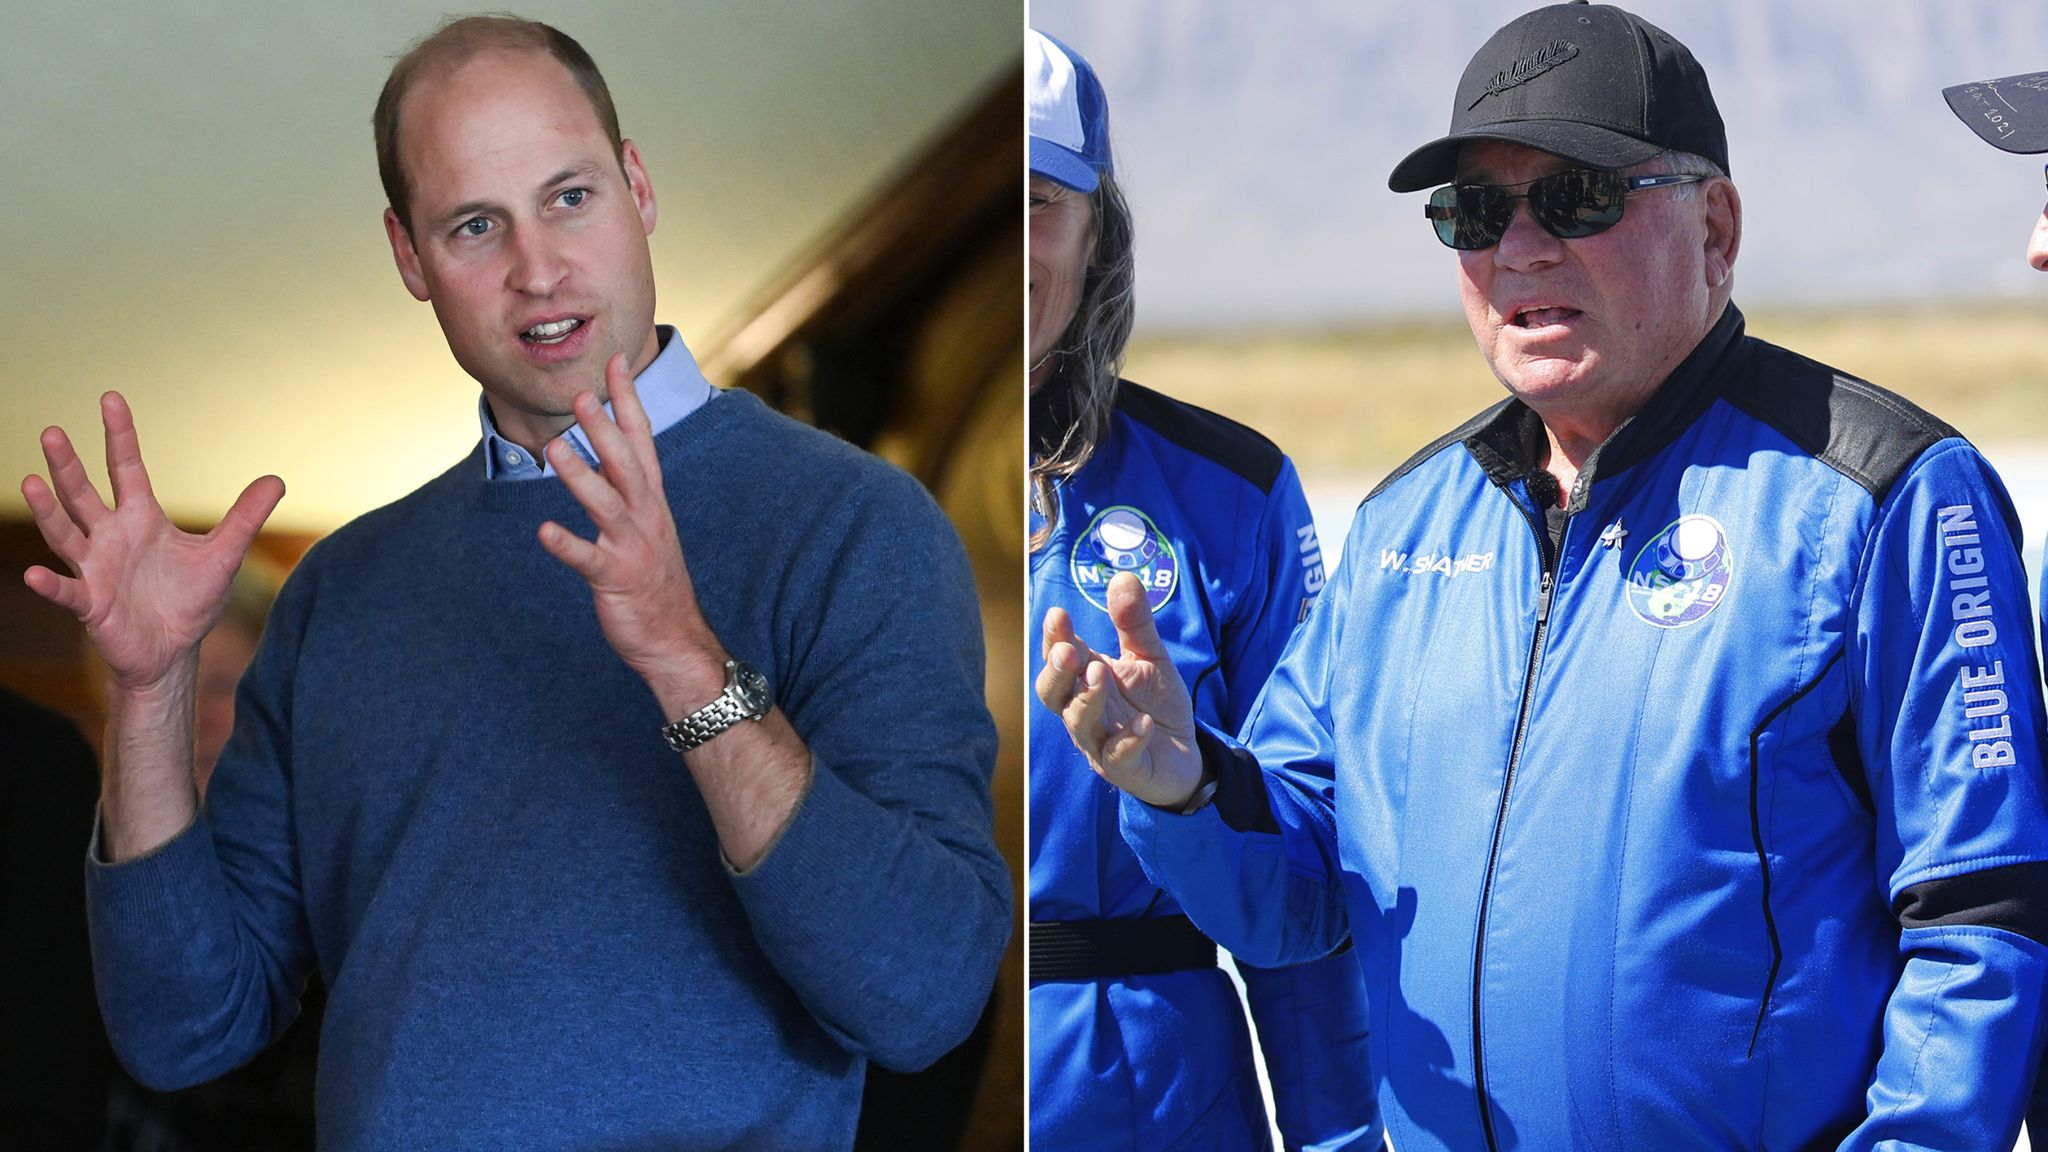 William Shatner hits back at Prince William's criticism of space travel ...